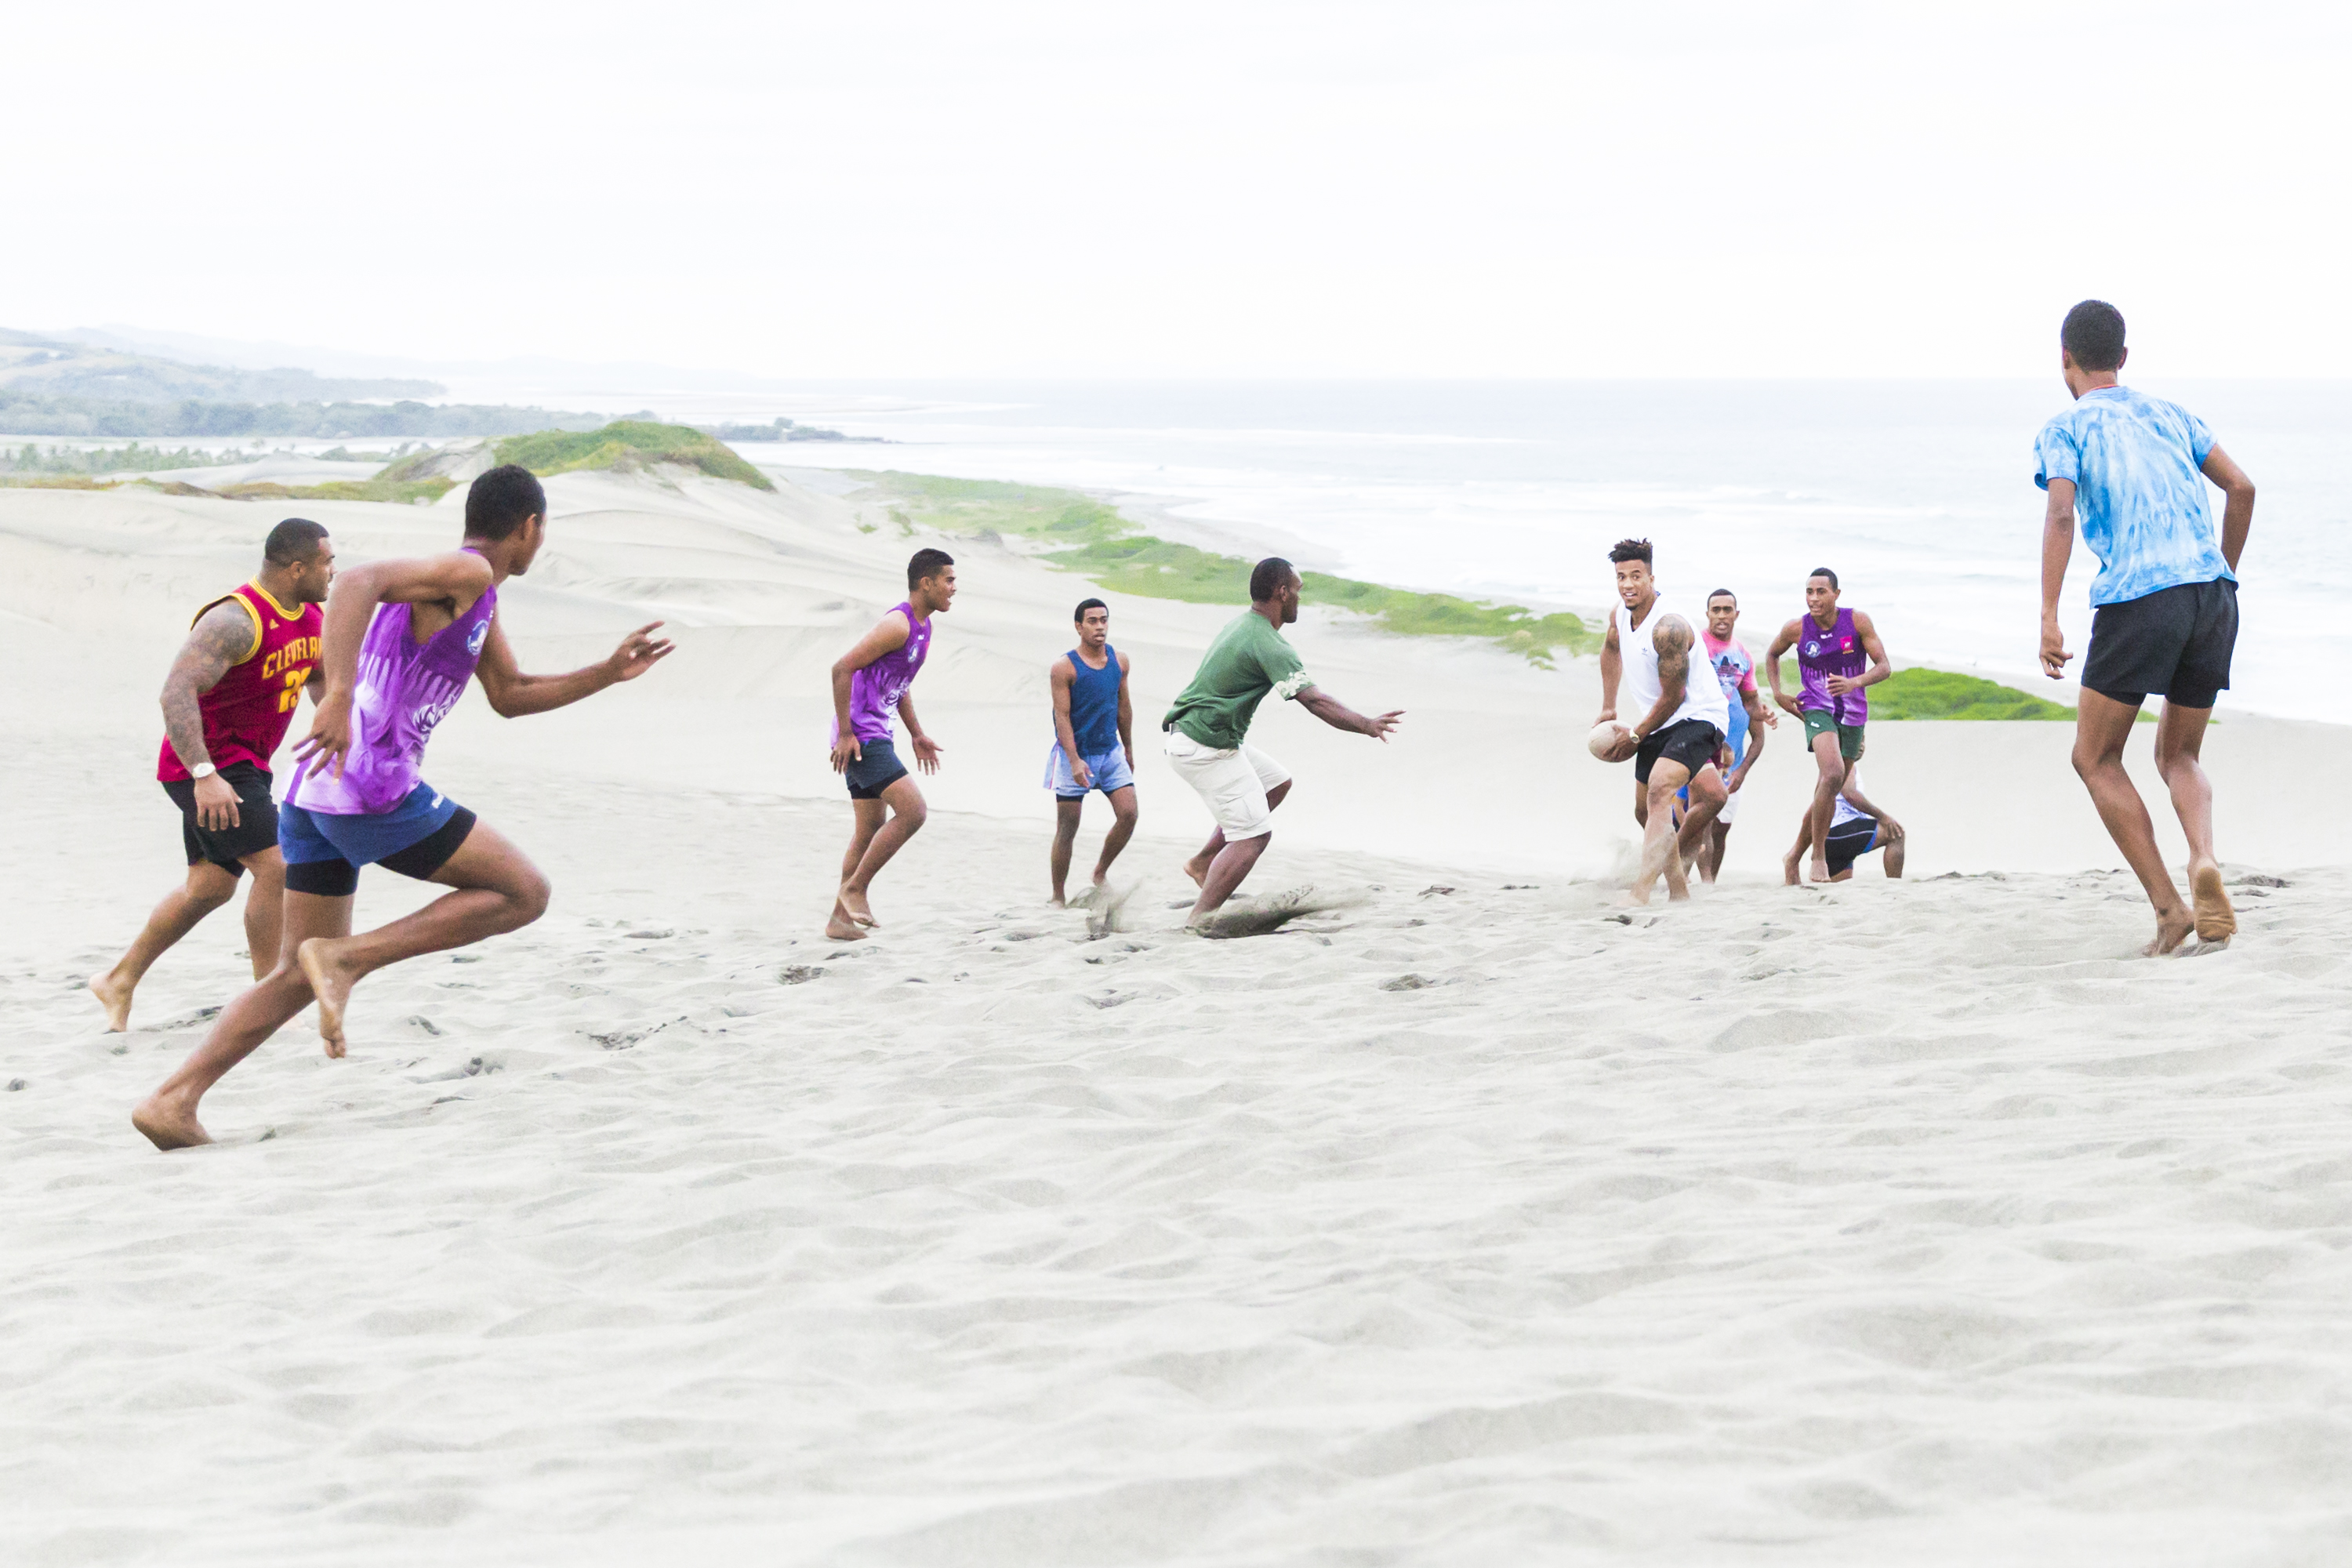 Anthony Watson enjoying a game of rugby with locals at Fiji's Sigatoka Sand Dunes National Park